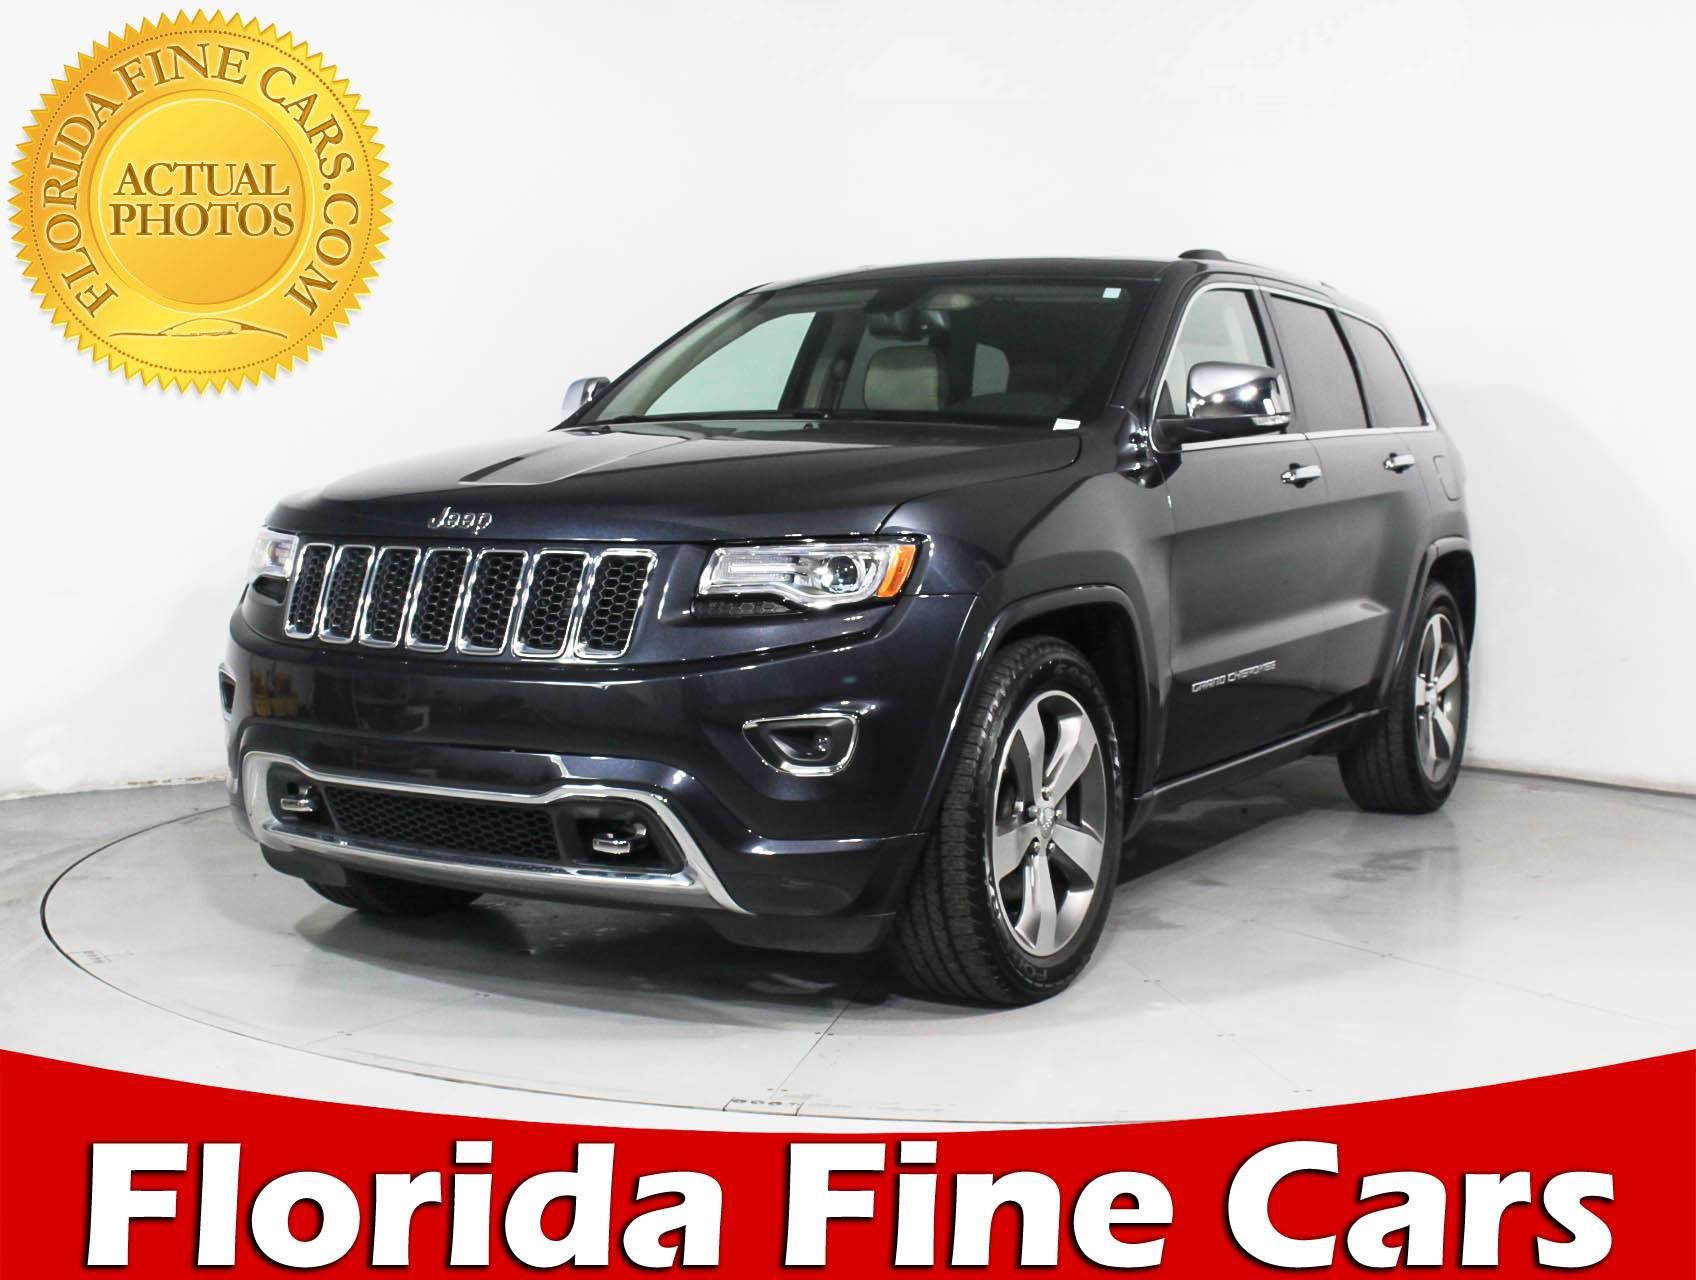 Used 2015 JEEP GRAND CHEROKEE OVERLAND SUV for sale in MIAMI FL